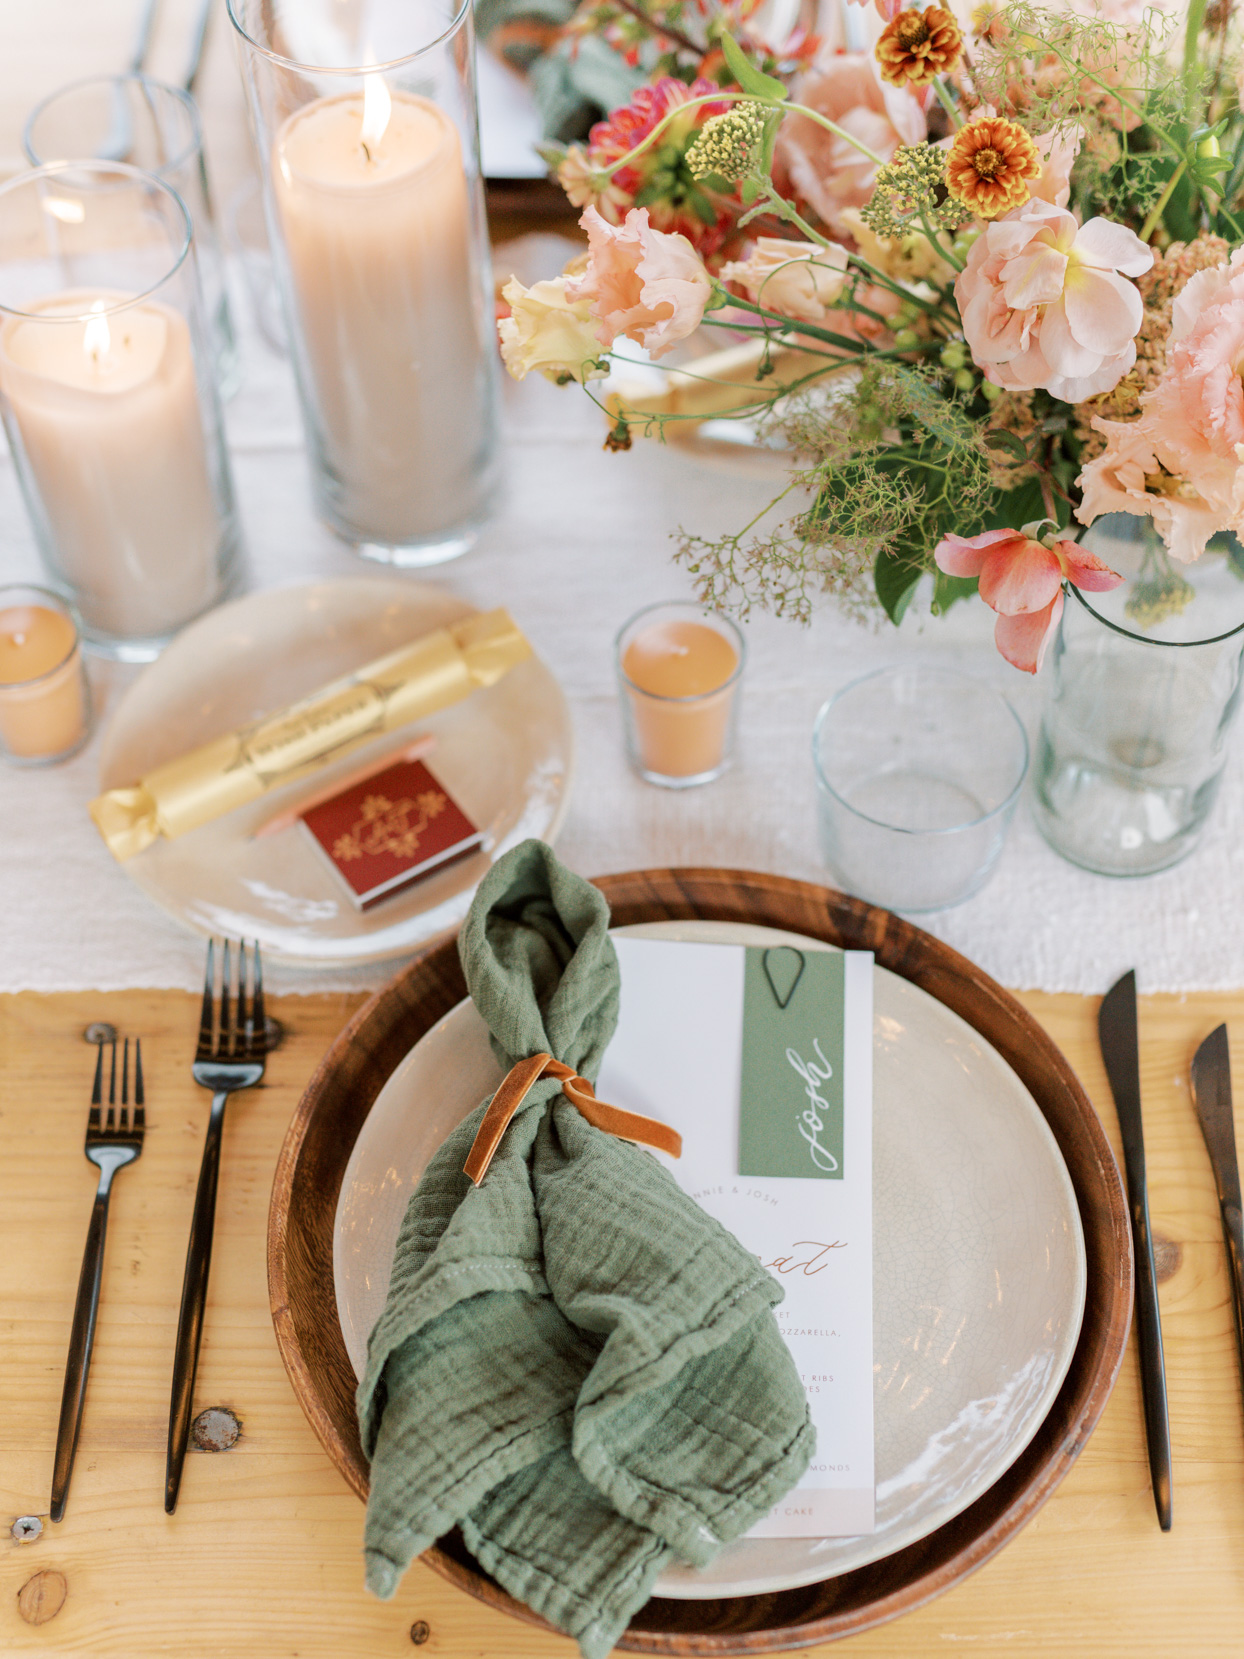 wedding place setting in orange and green color scheme